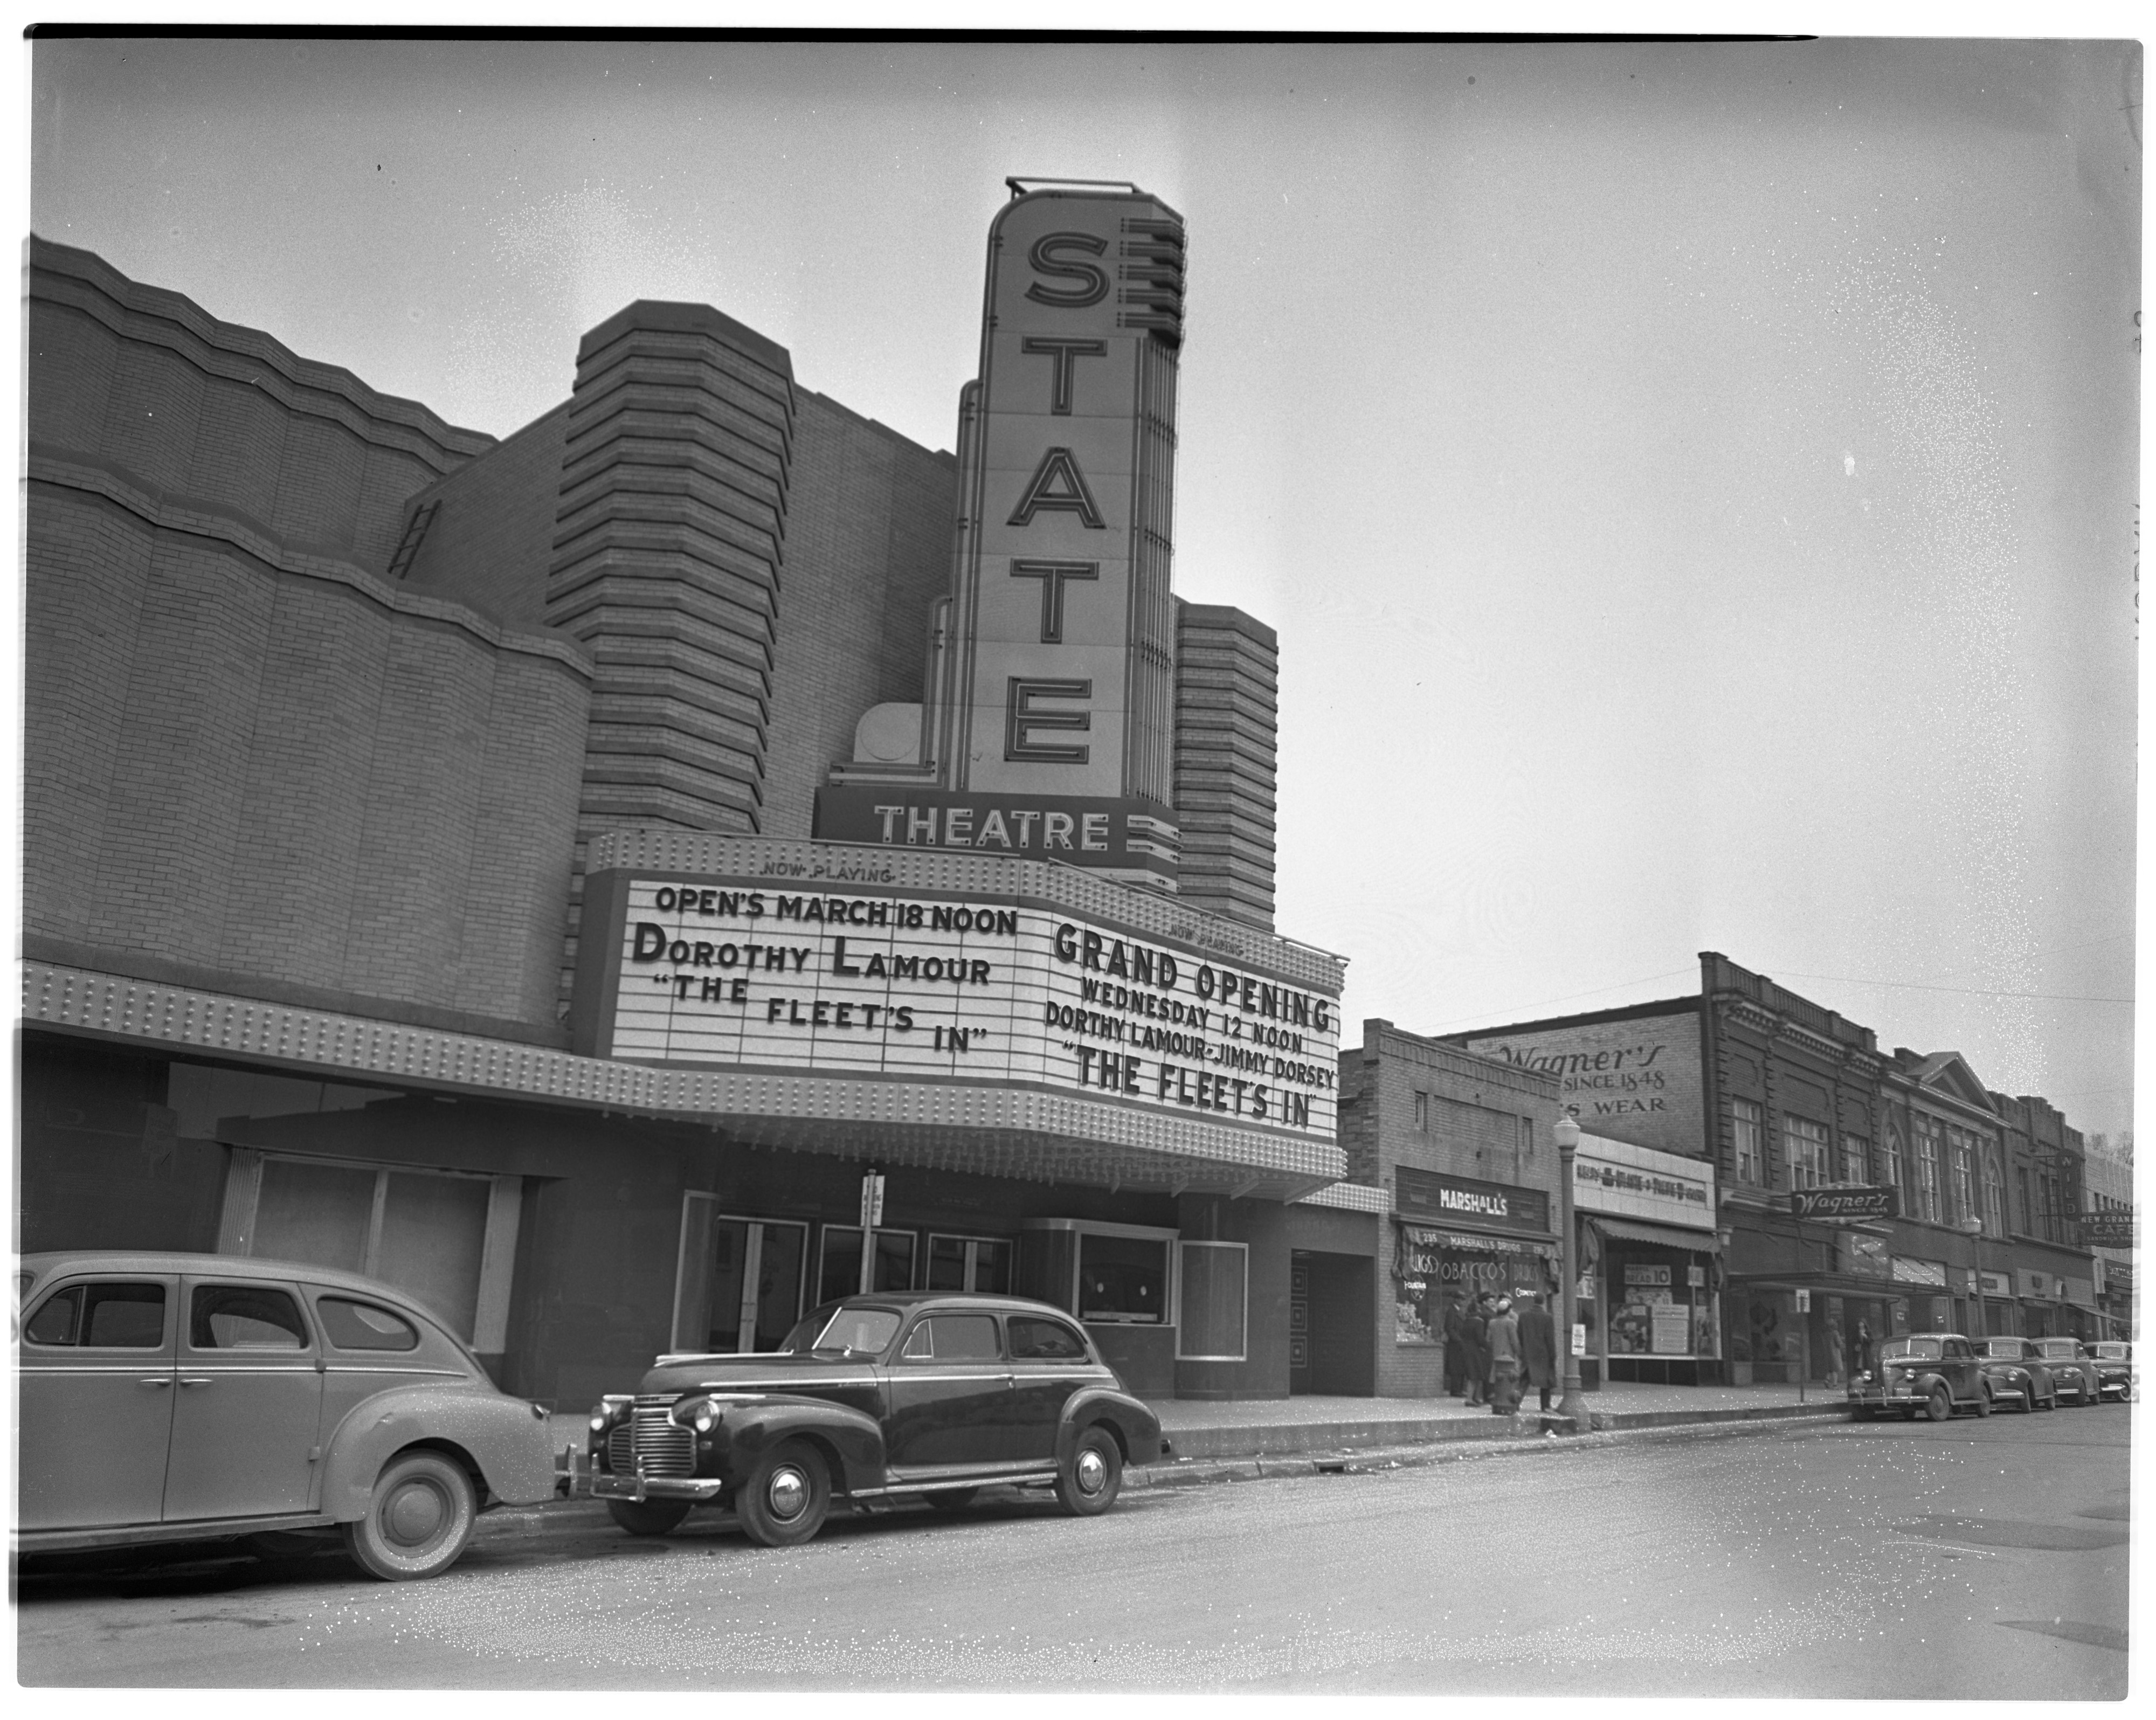 State Theatre: Grand Opening image